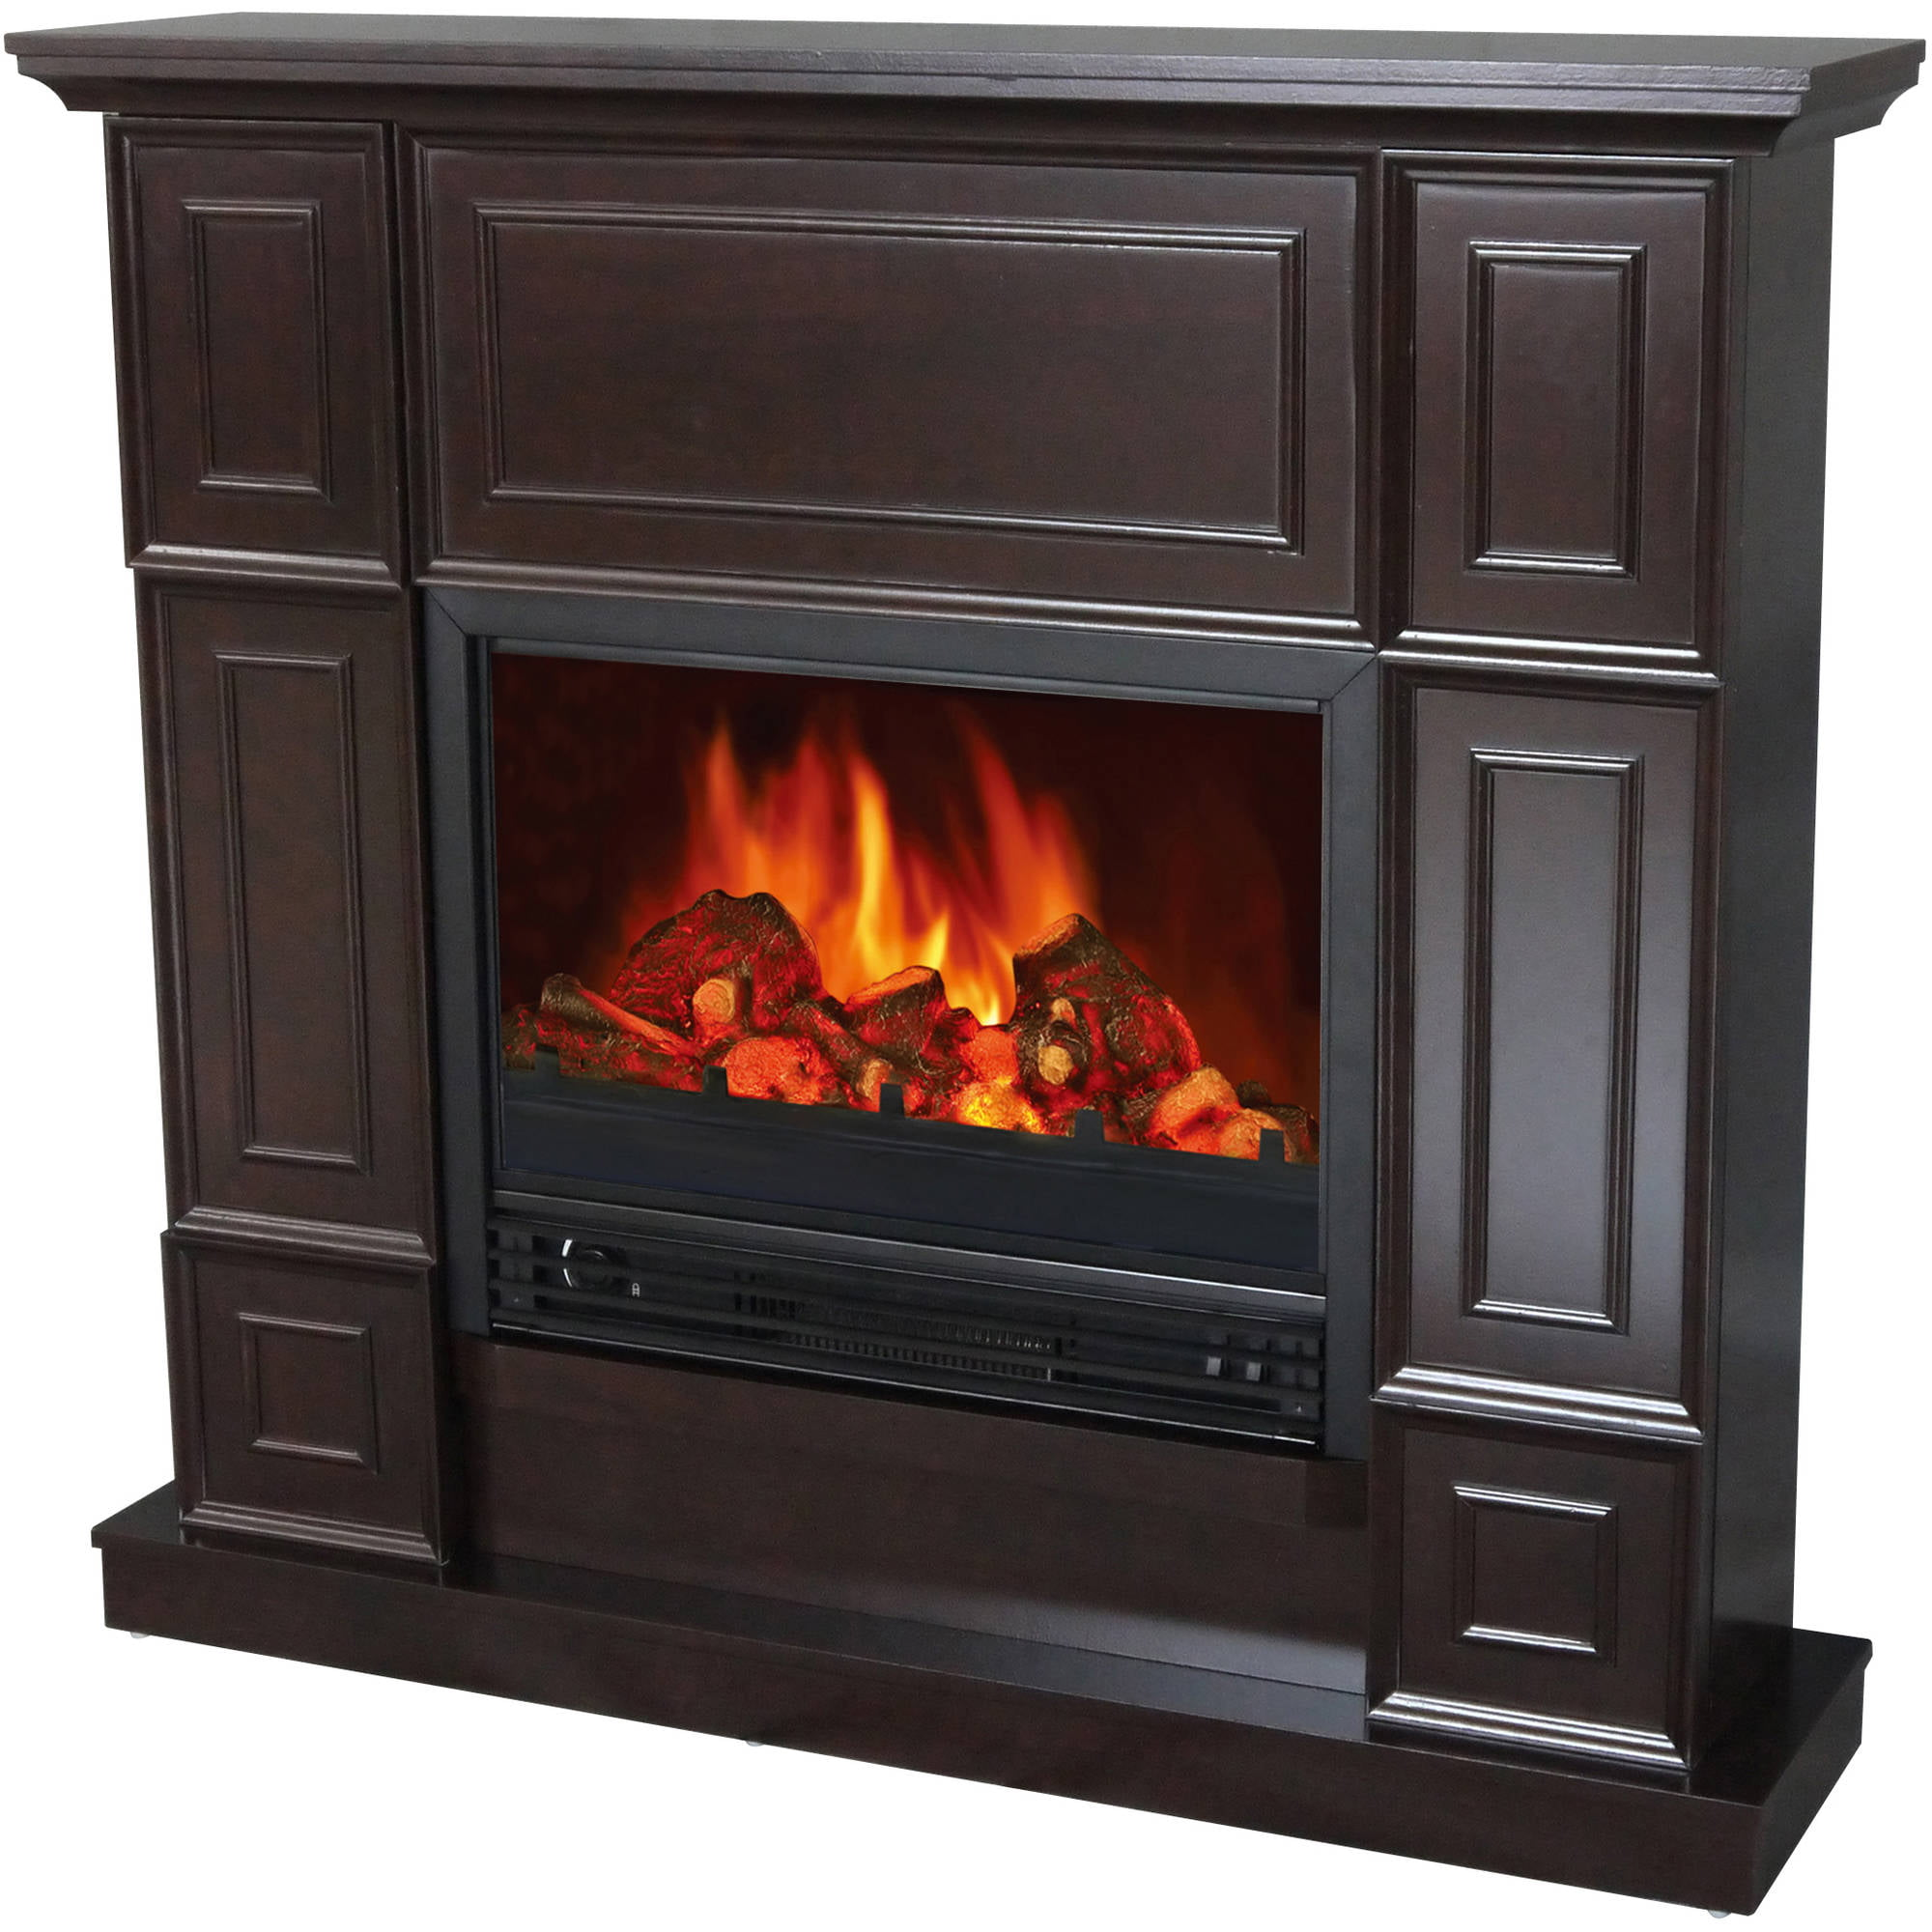 "Free Shipping. Buy Decor-Flame Electric Fireplace Space Heater with 44"" Mantle at Walmart.com"